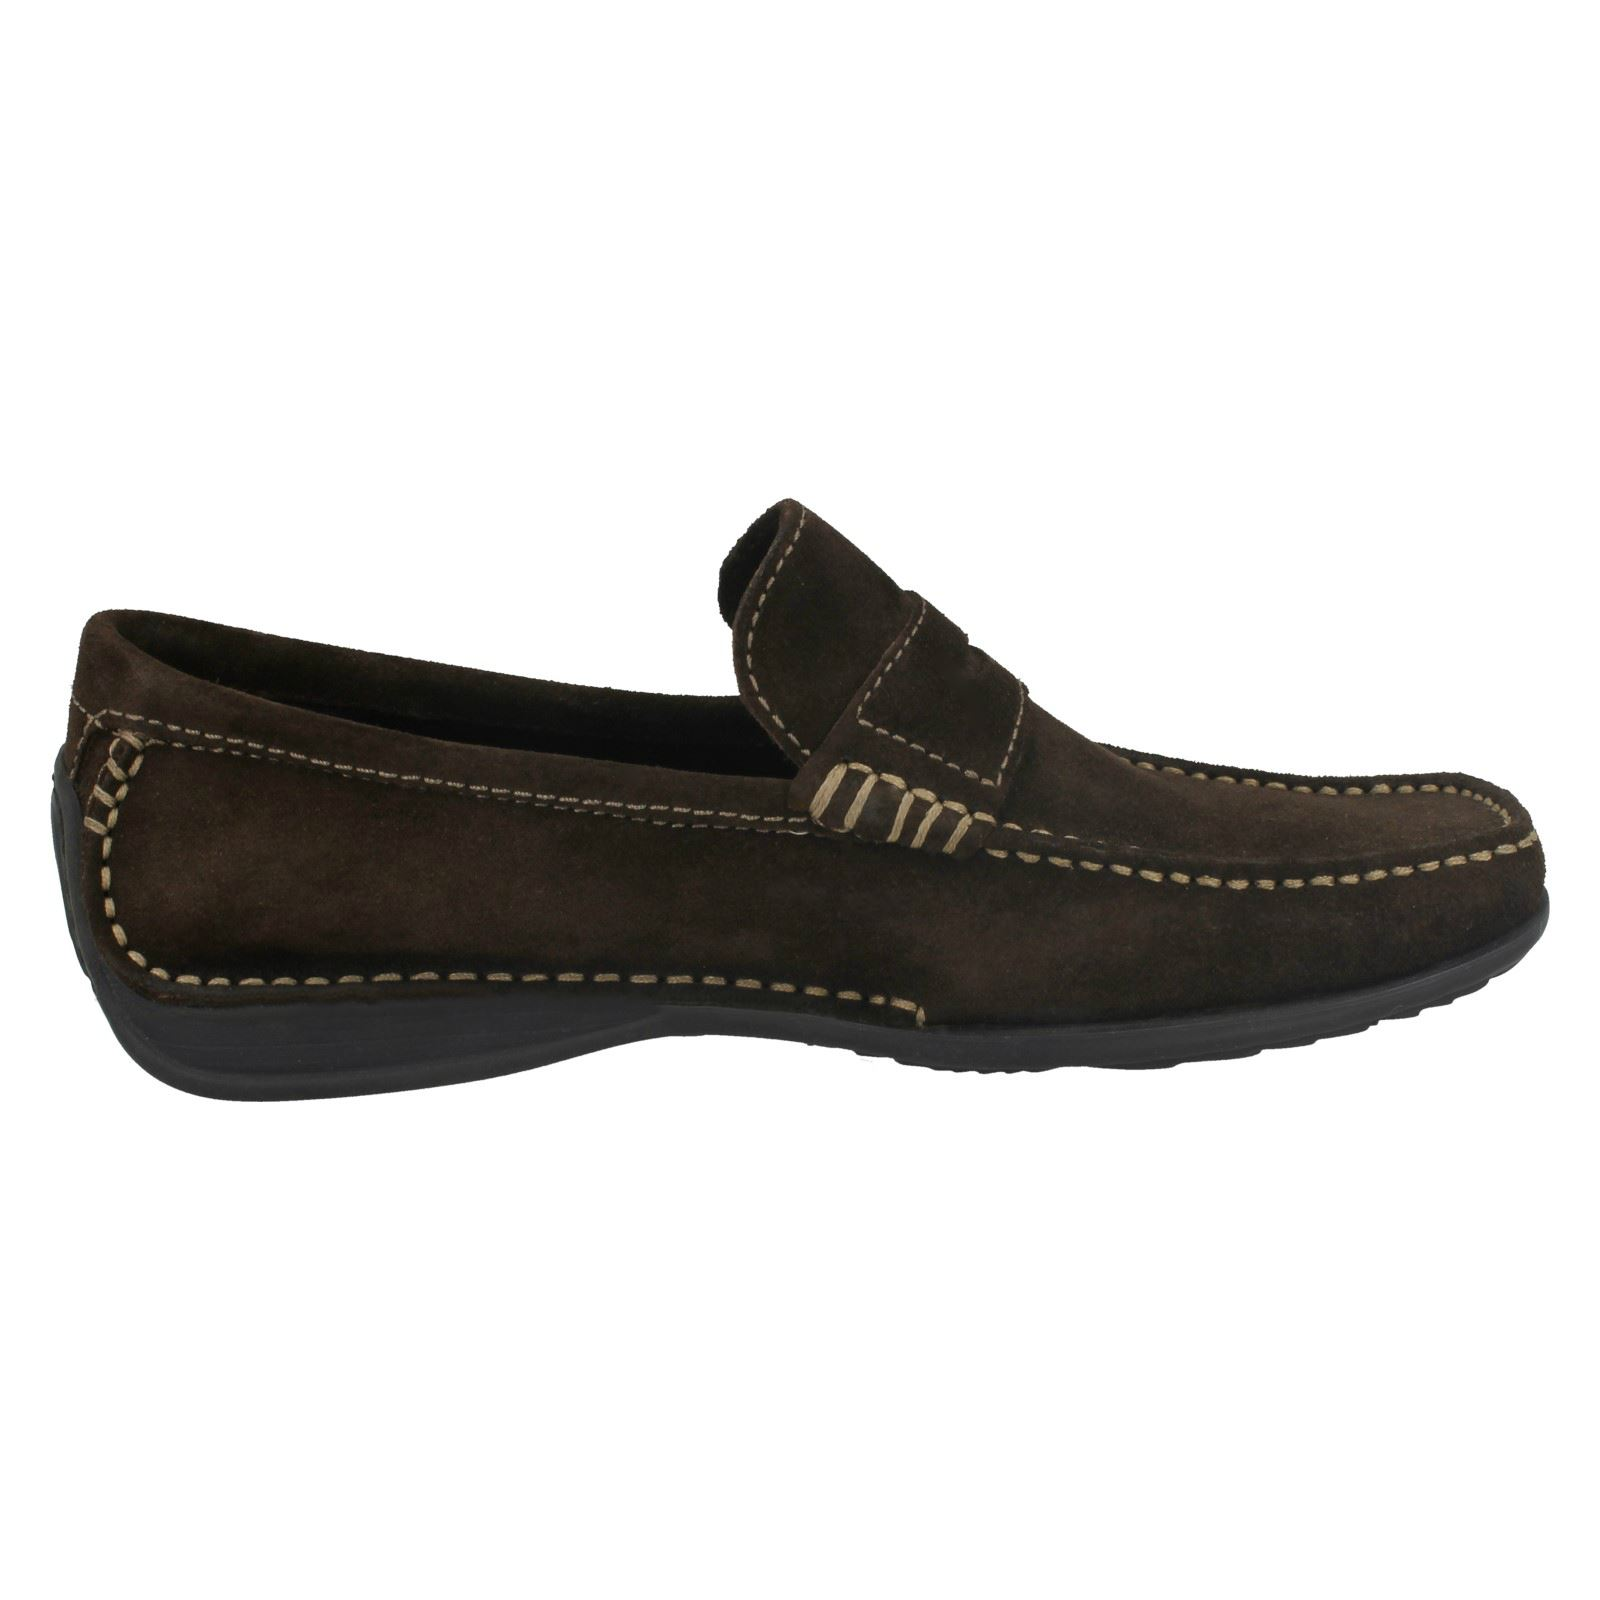 Mens Loake Slip On Loafer Shoes Cortina